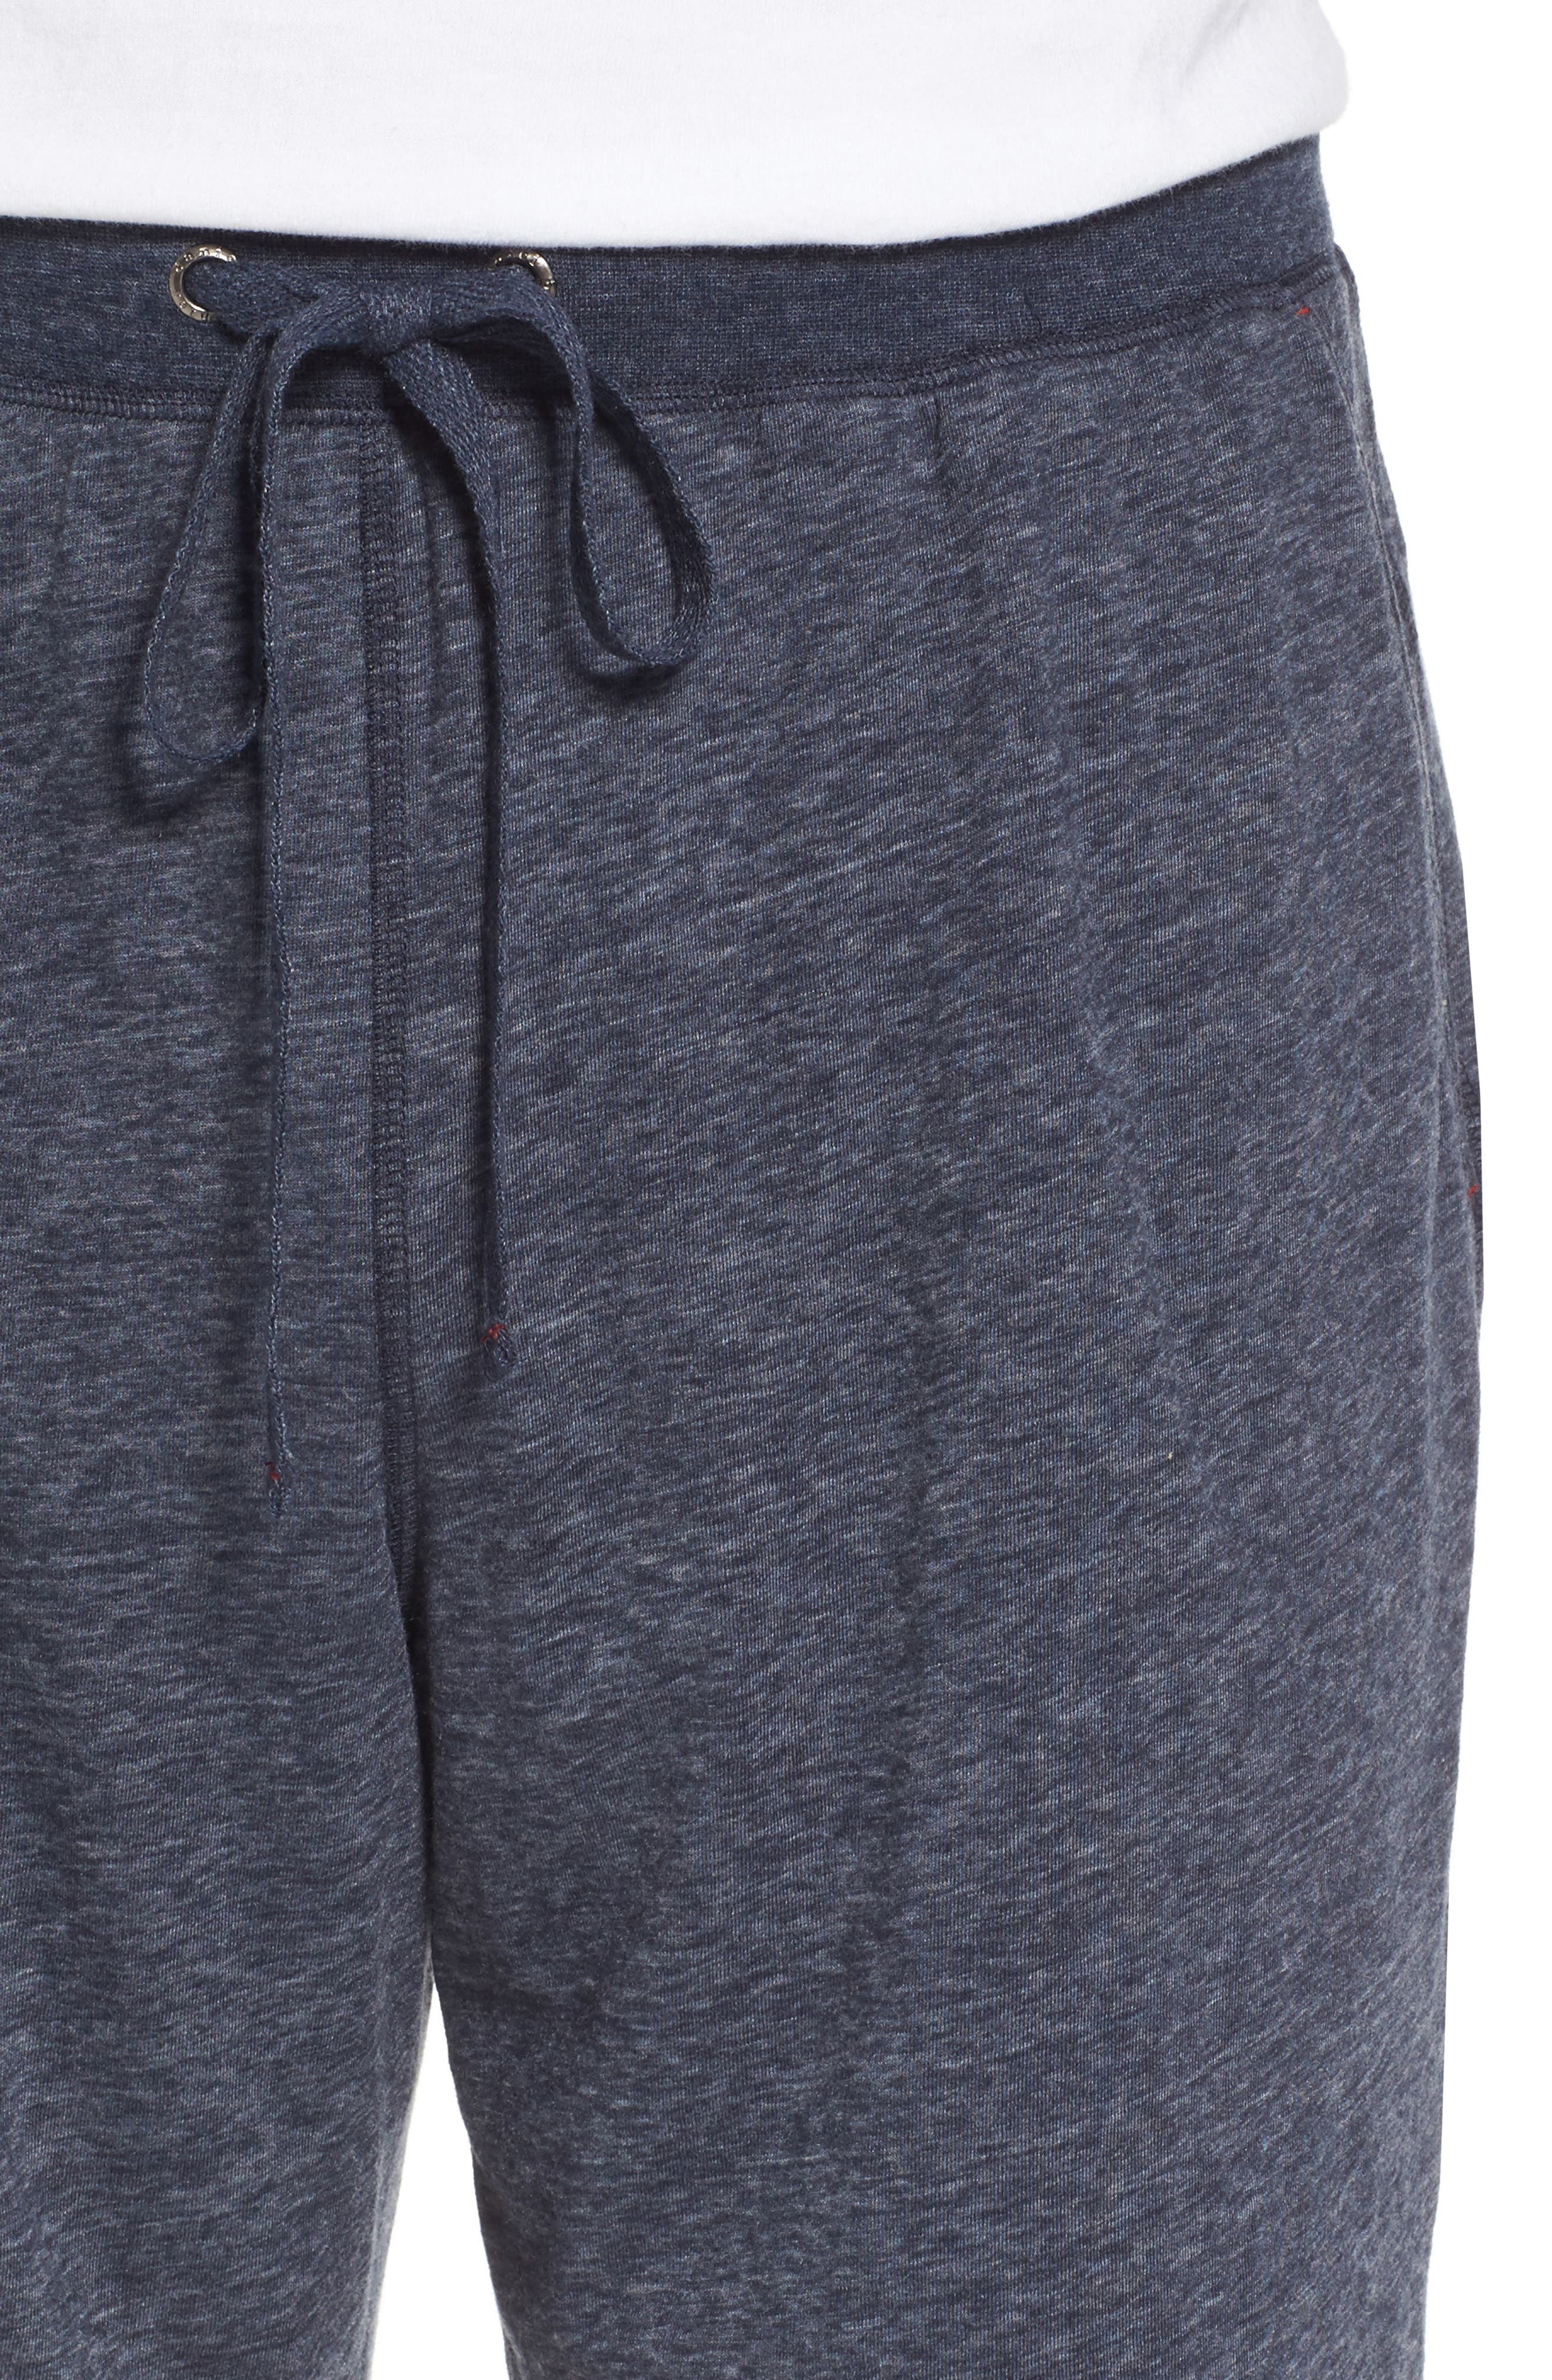 Recycled Cotton Blend Lounge Shorts,                             Alternate thumbnail 4, color,                             NAVY HEATHER